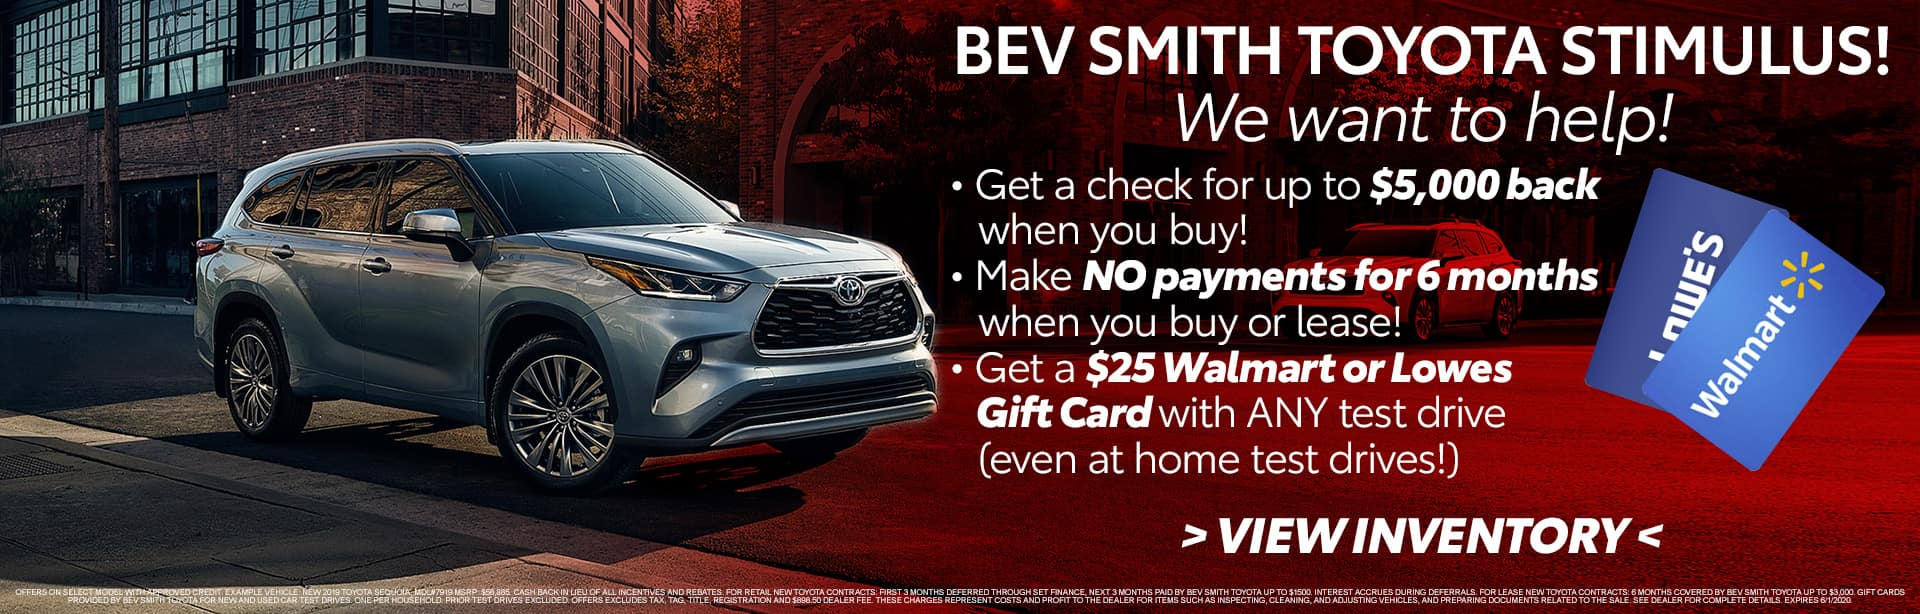 We want to help you with our Stimulus offer at Bev Smith Toyota in Fort Pierce, FL